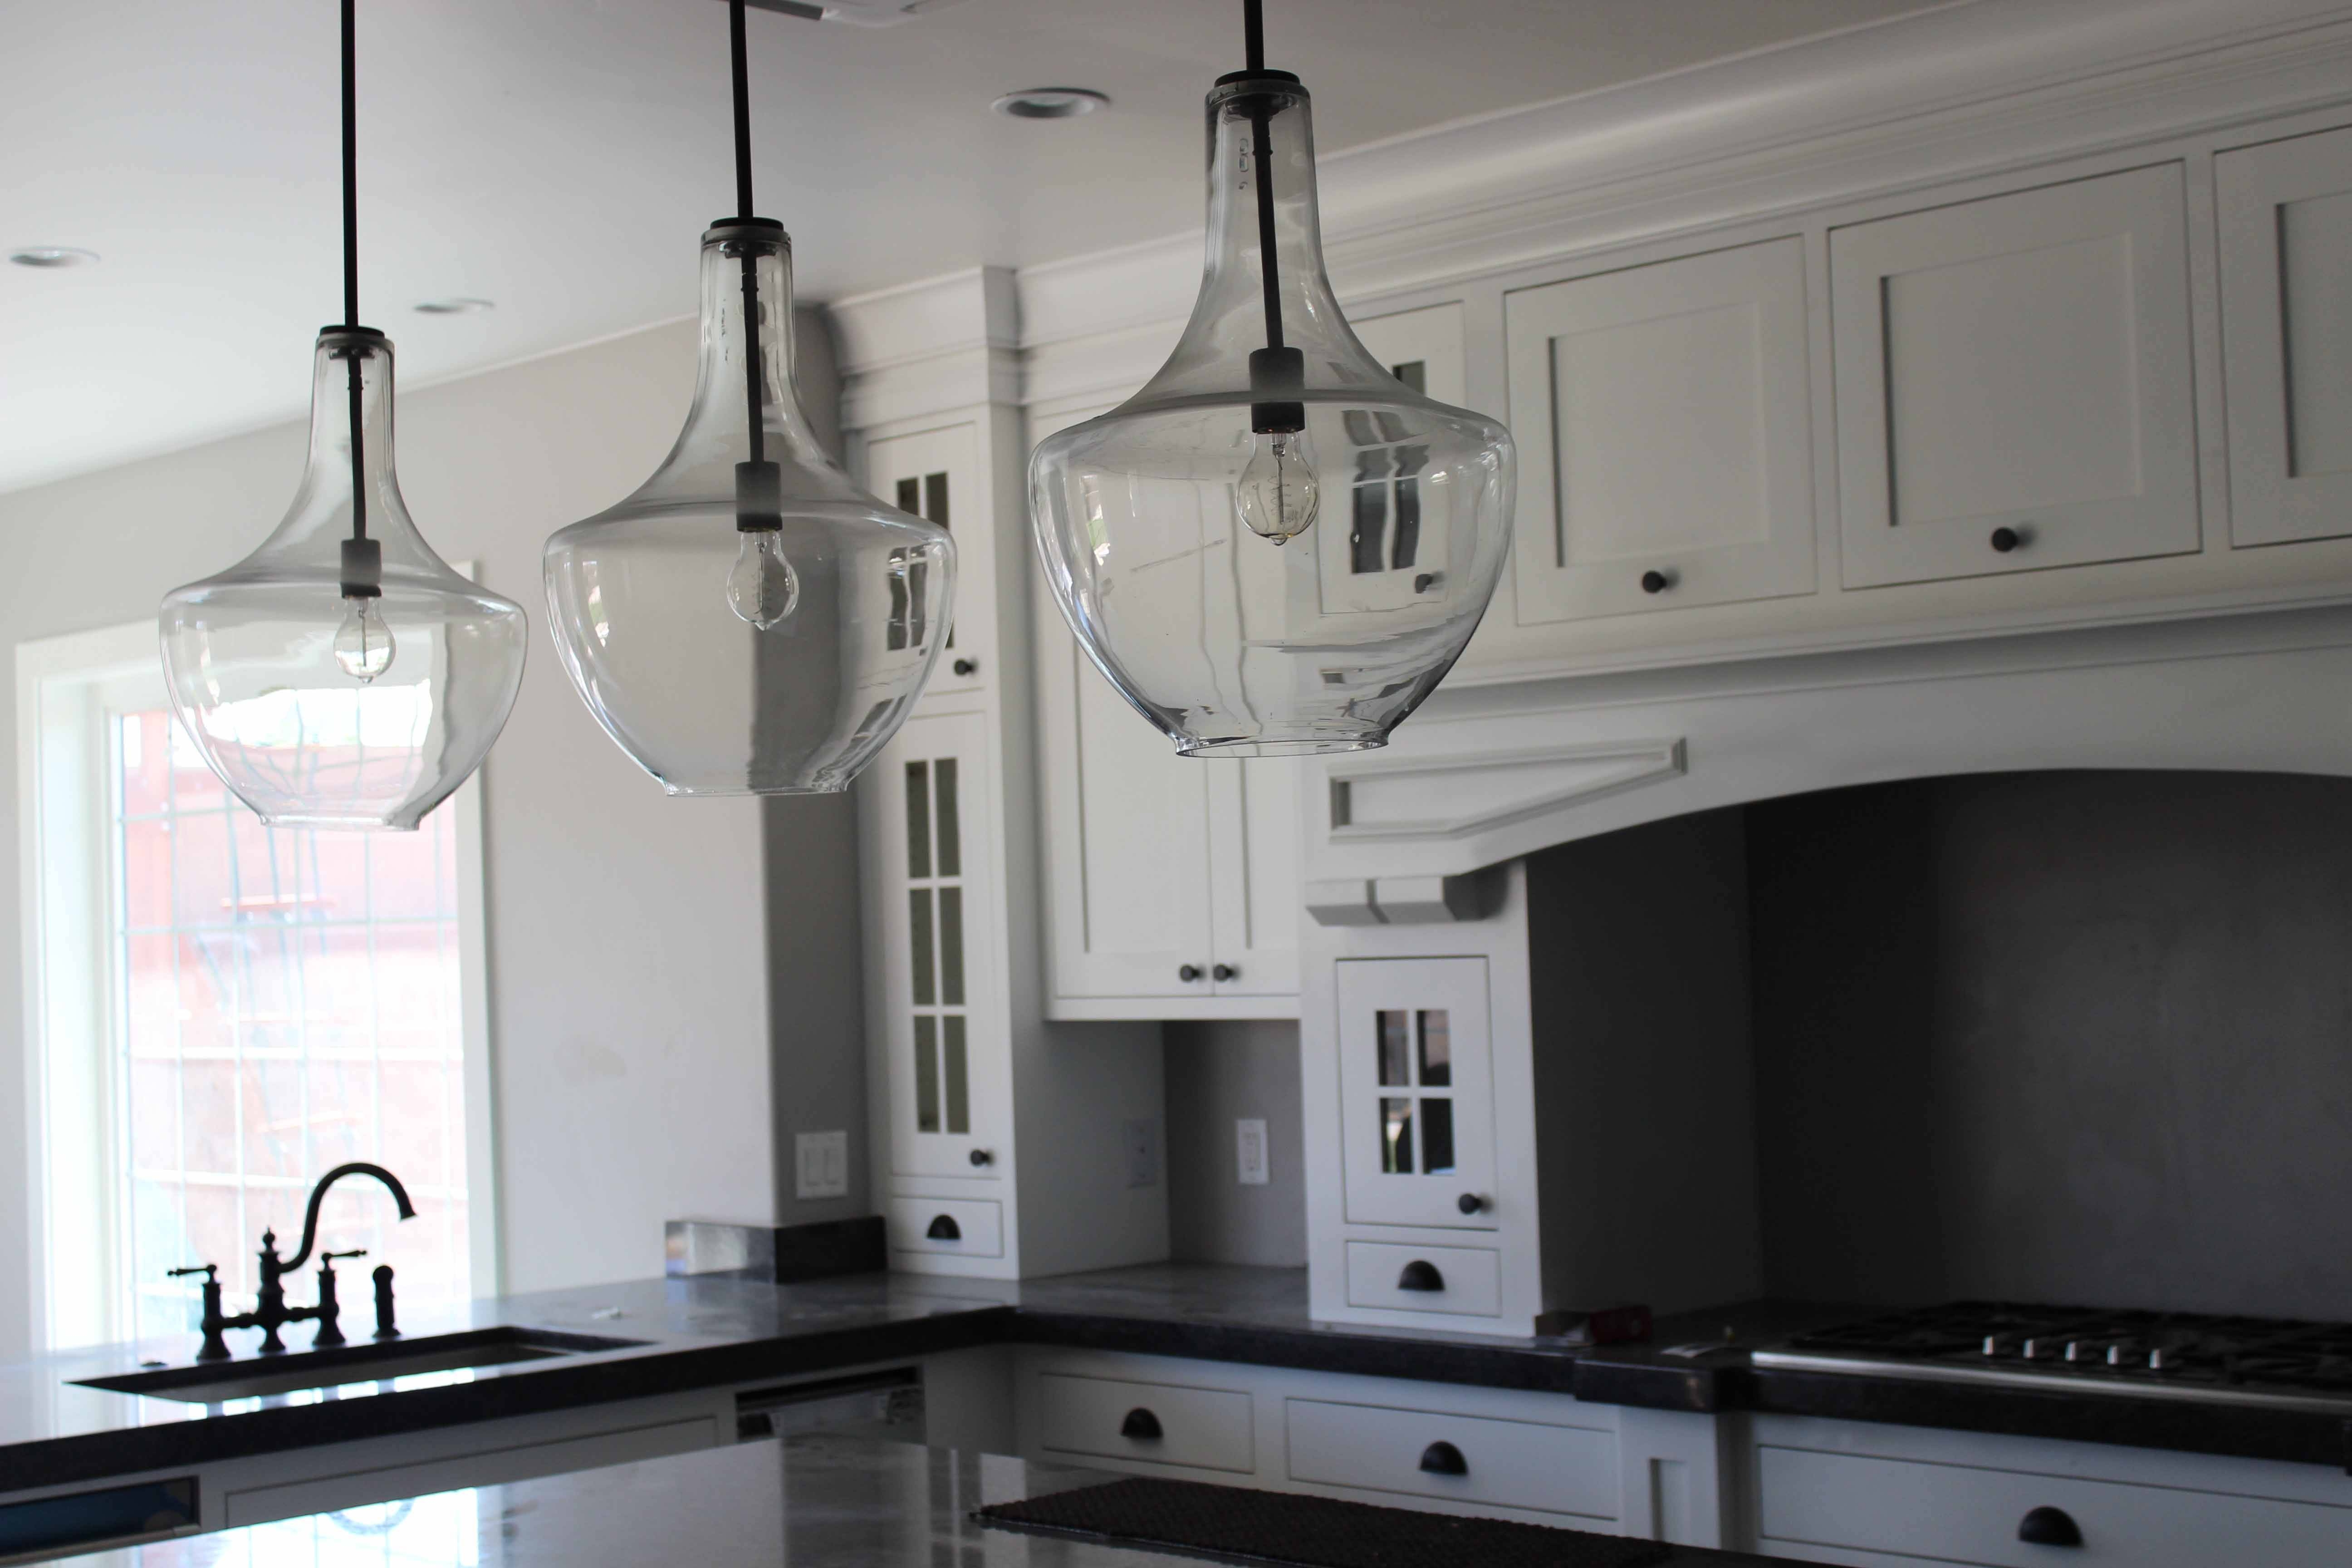 Fresh Clear Glass Pendant Lights For Kitchen Island 15 On 3 Bulb inside Double Pendant Lights For Kitchen (Image 6 of 15)